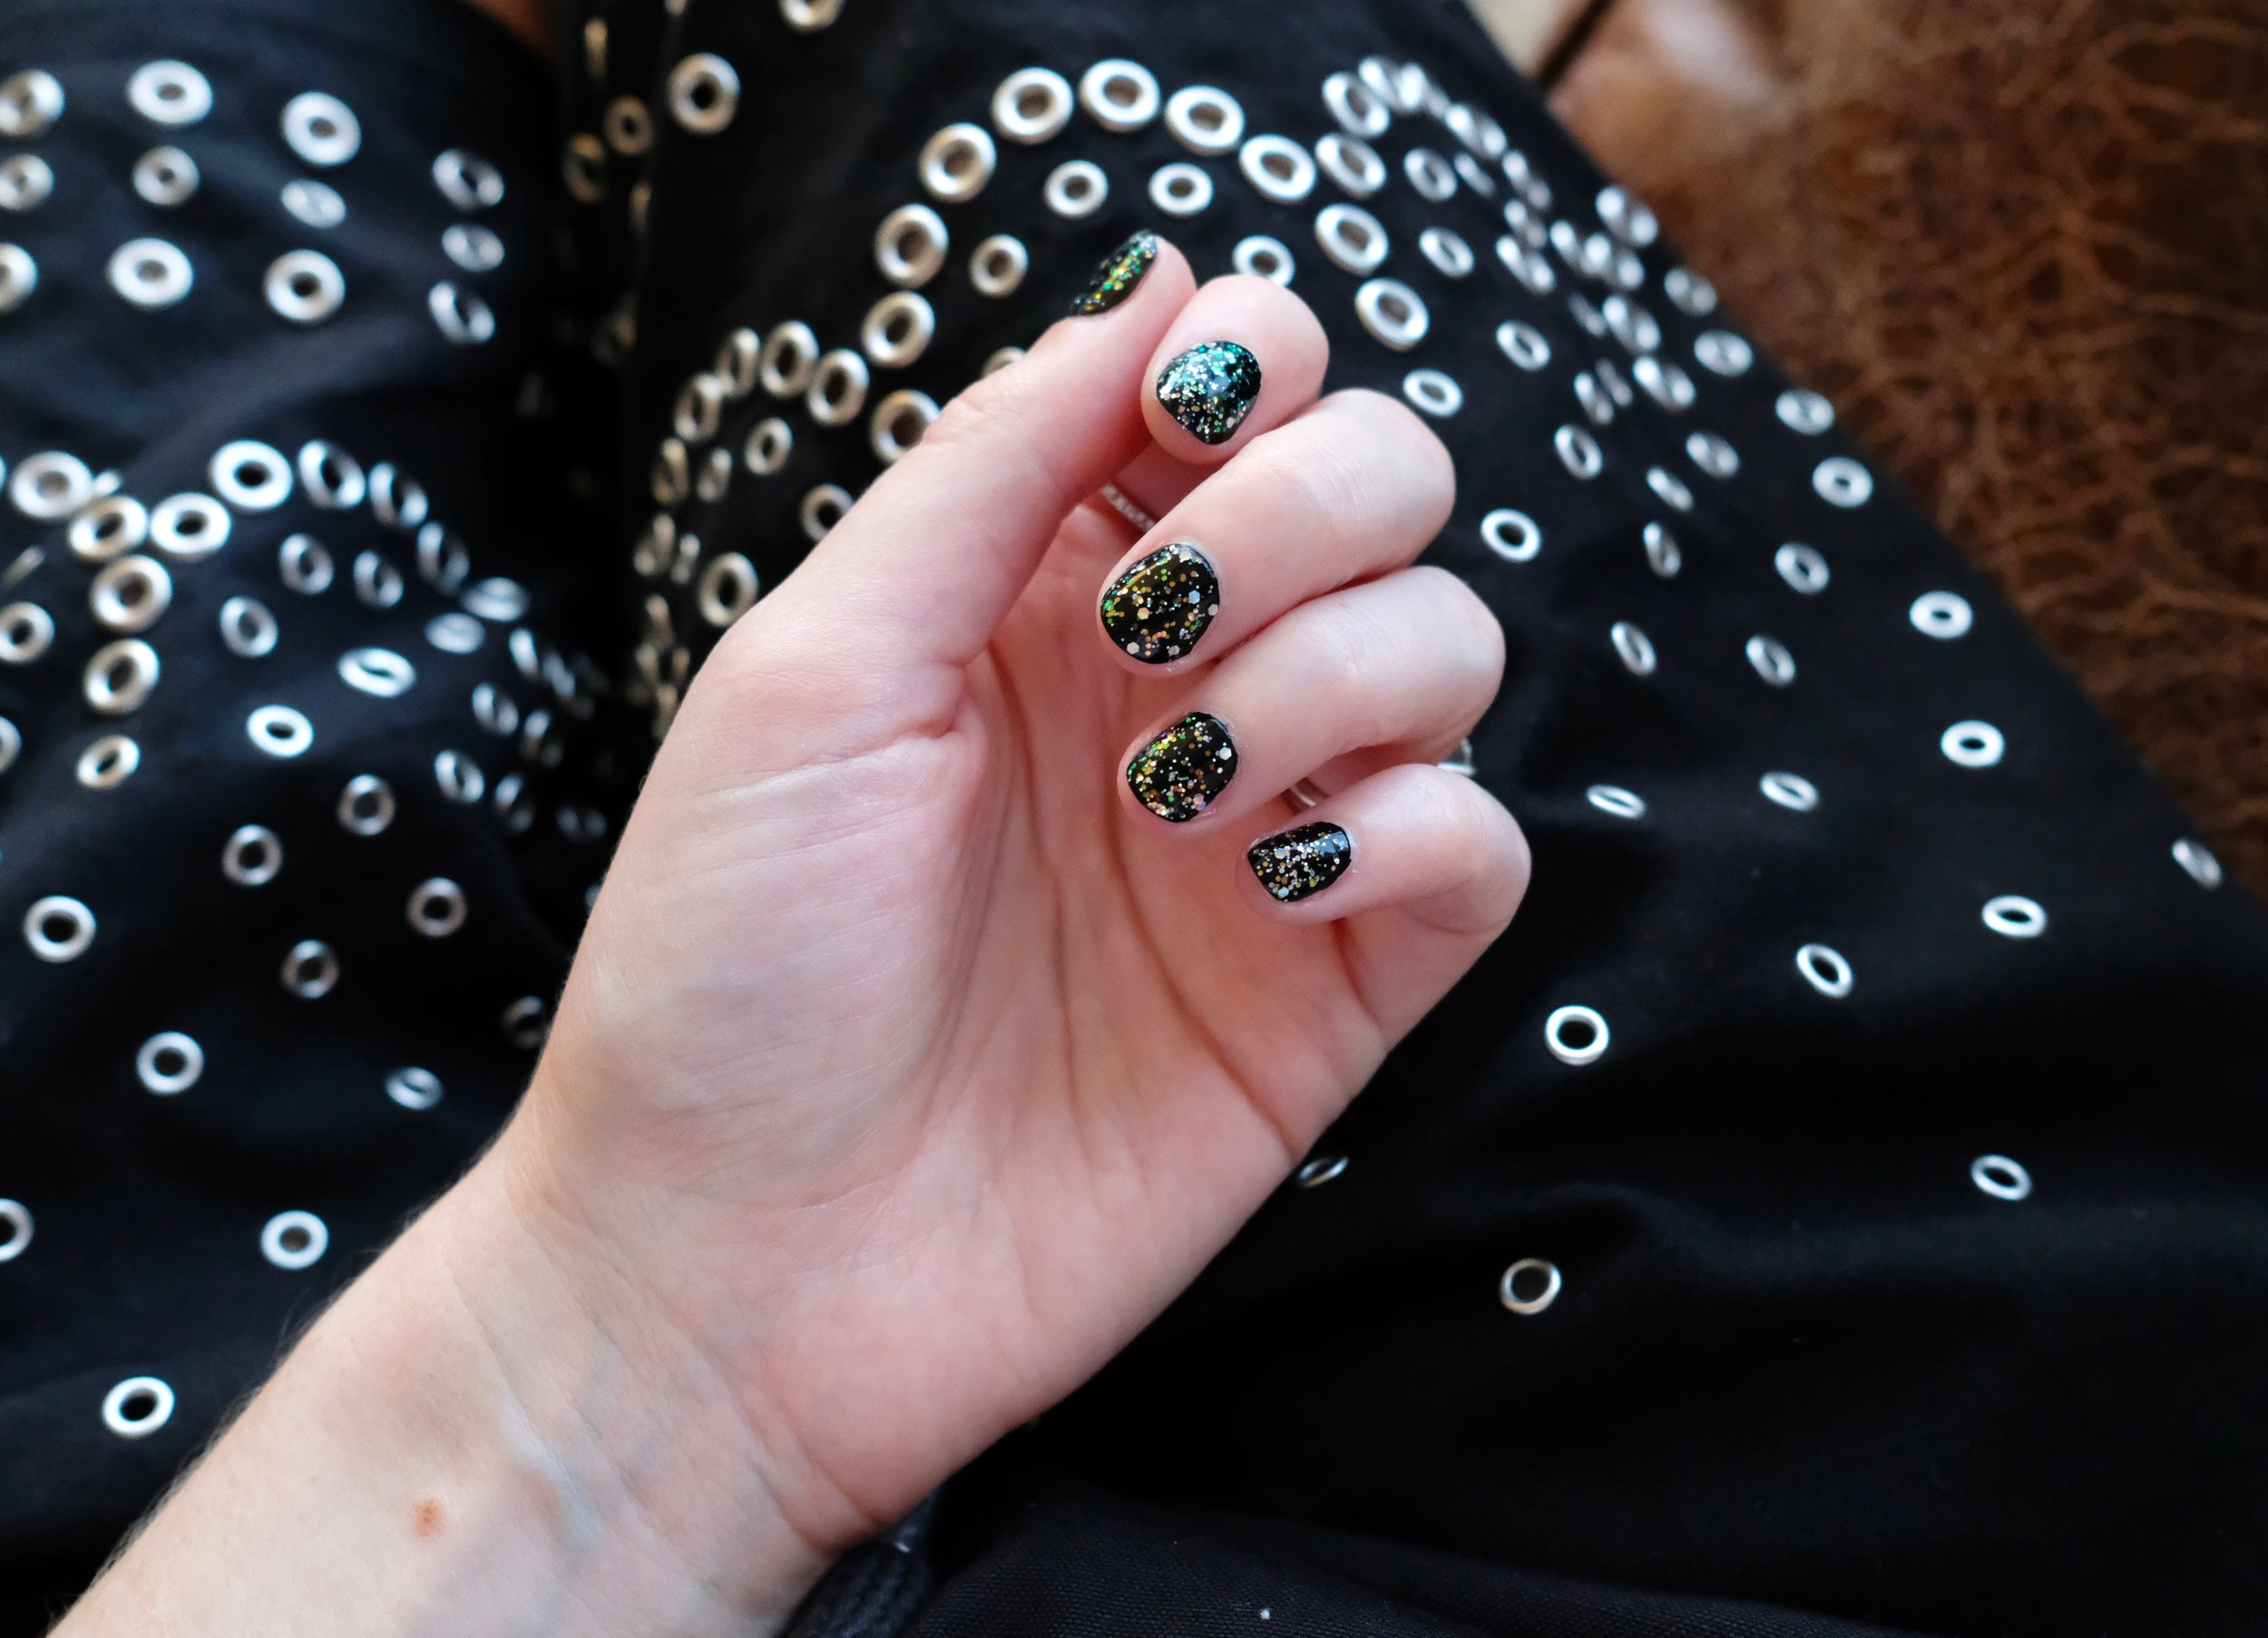 JINsoon Absolute Black  layered with  Absolute Glitz  from the new Monochrome Collection.